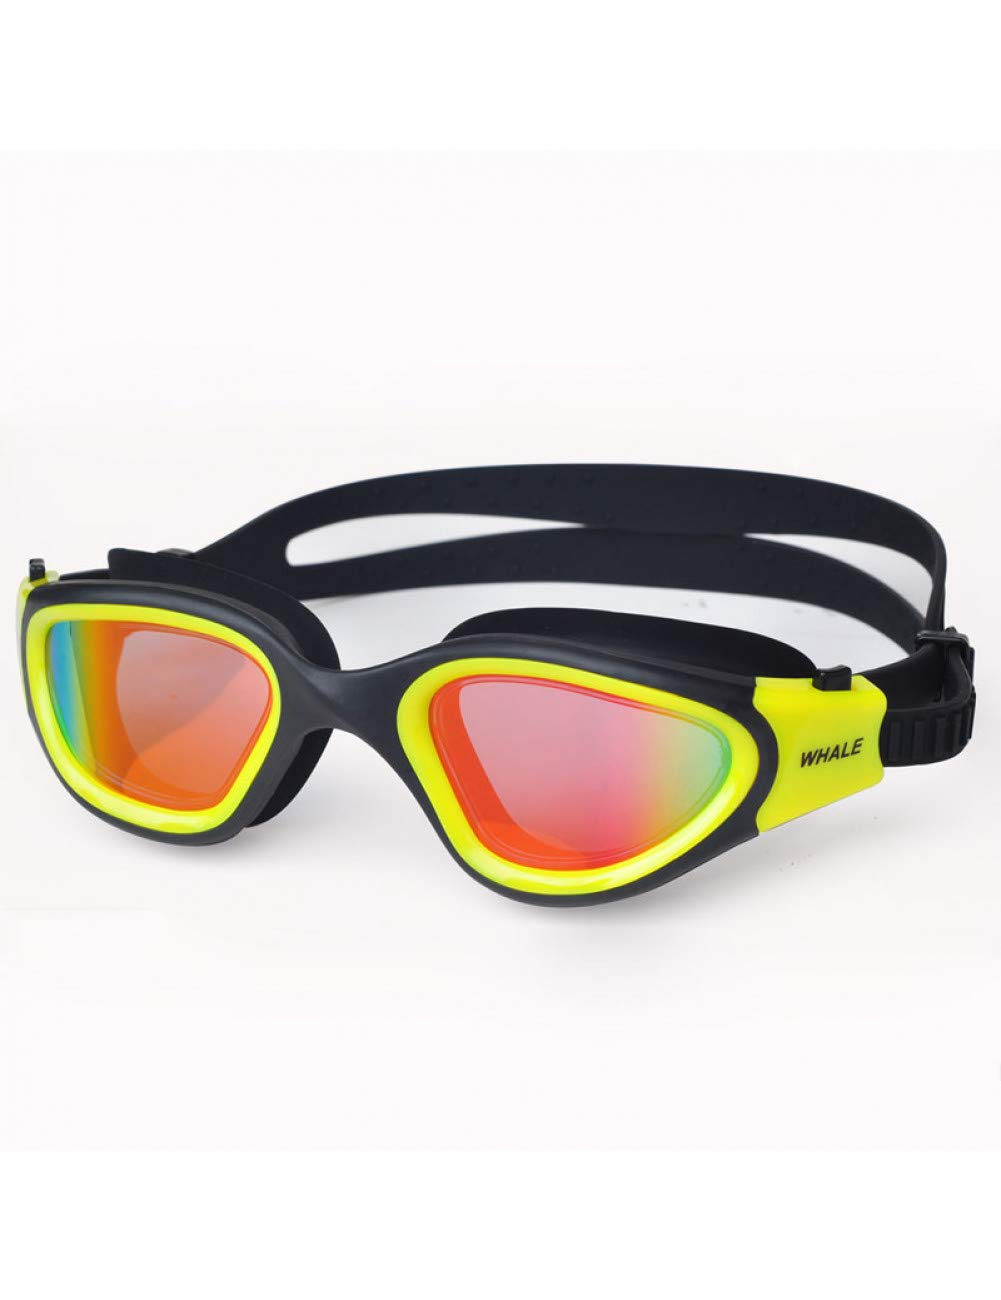 Yellow RSRZ Swimming Goggles Waterproof Adjustable Silicone Swim Glasses In Pool Adult Anti-Fog